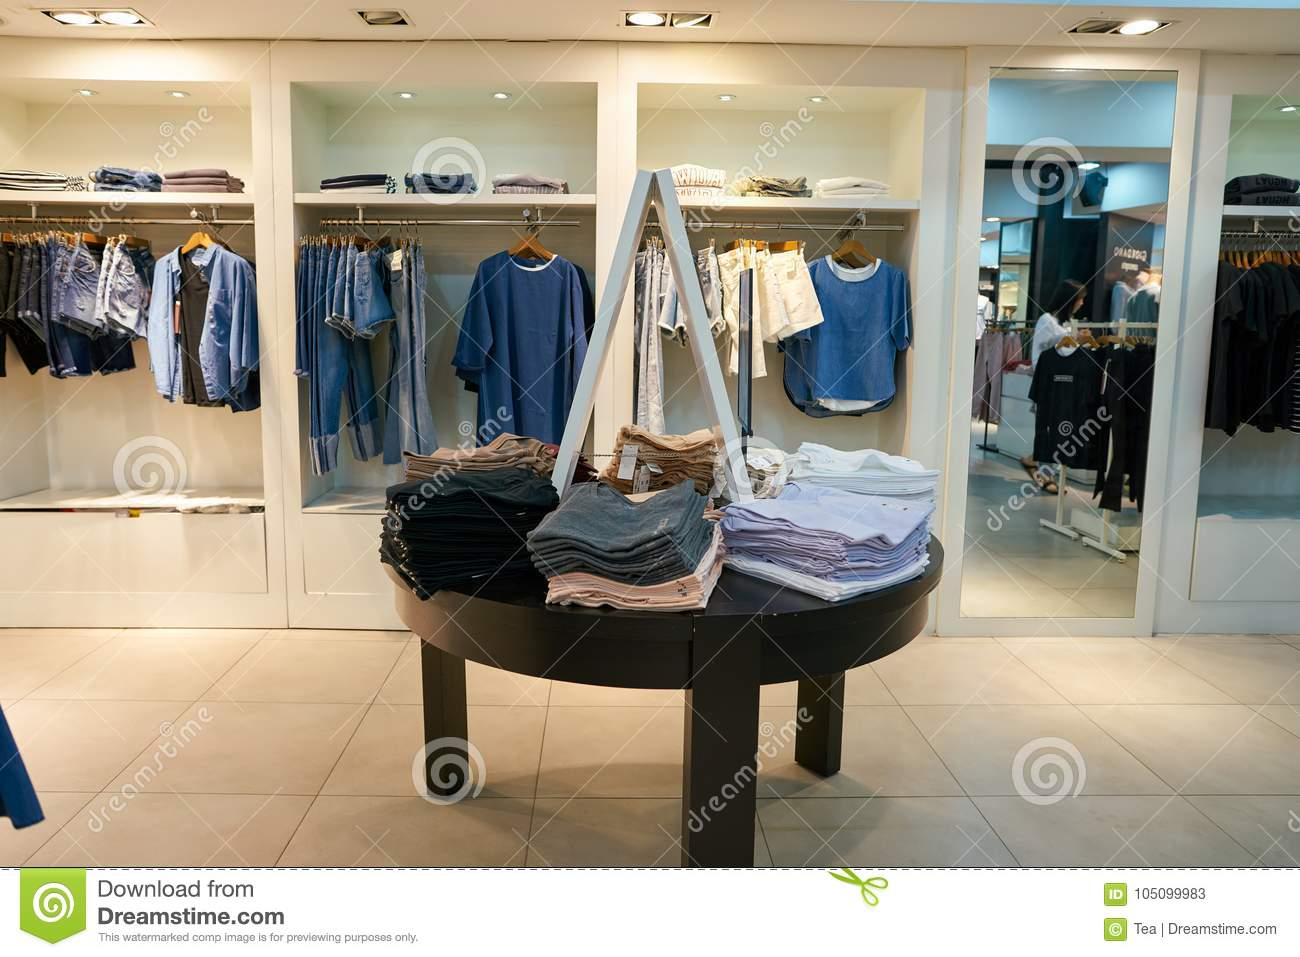 459c004114d Giordano store in Seoul editorial stock photo. Image of clothing ...